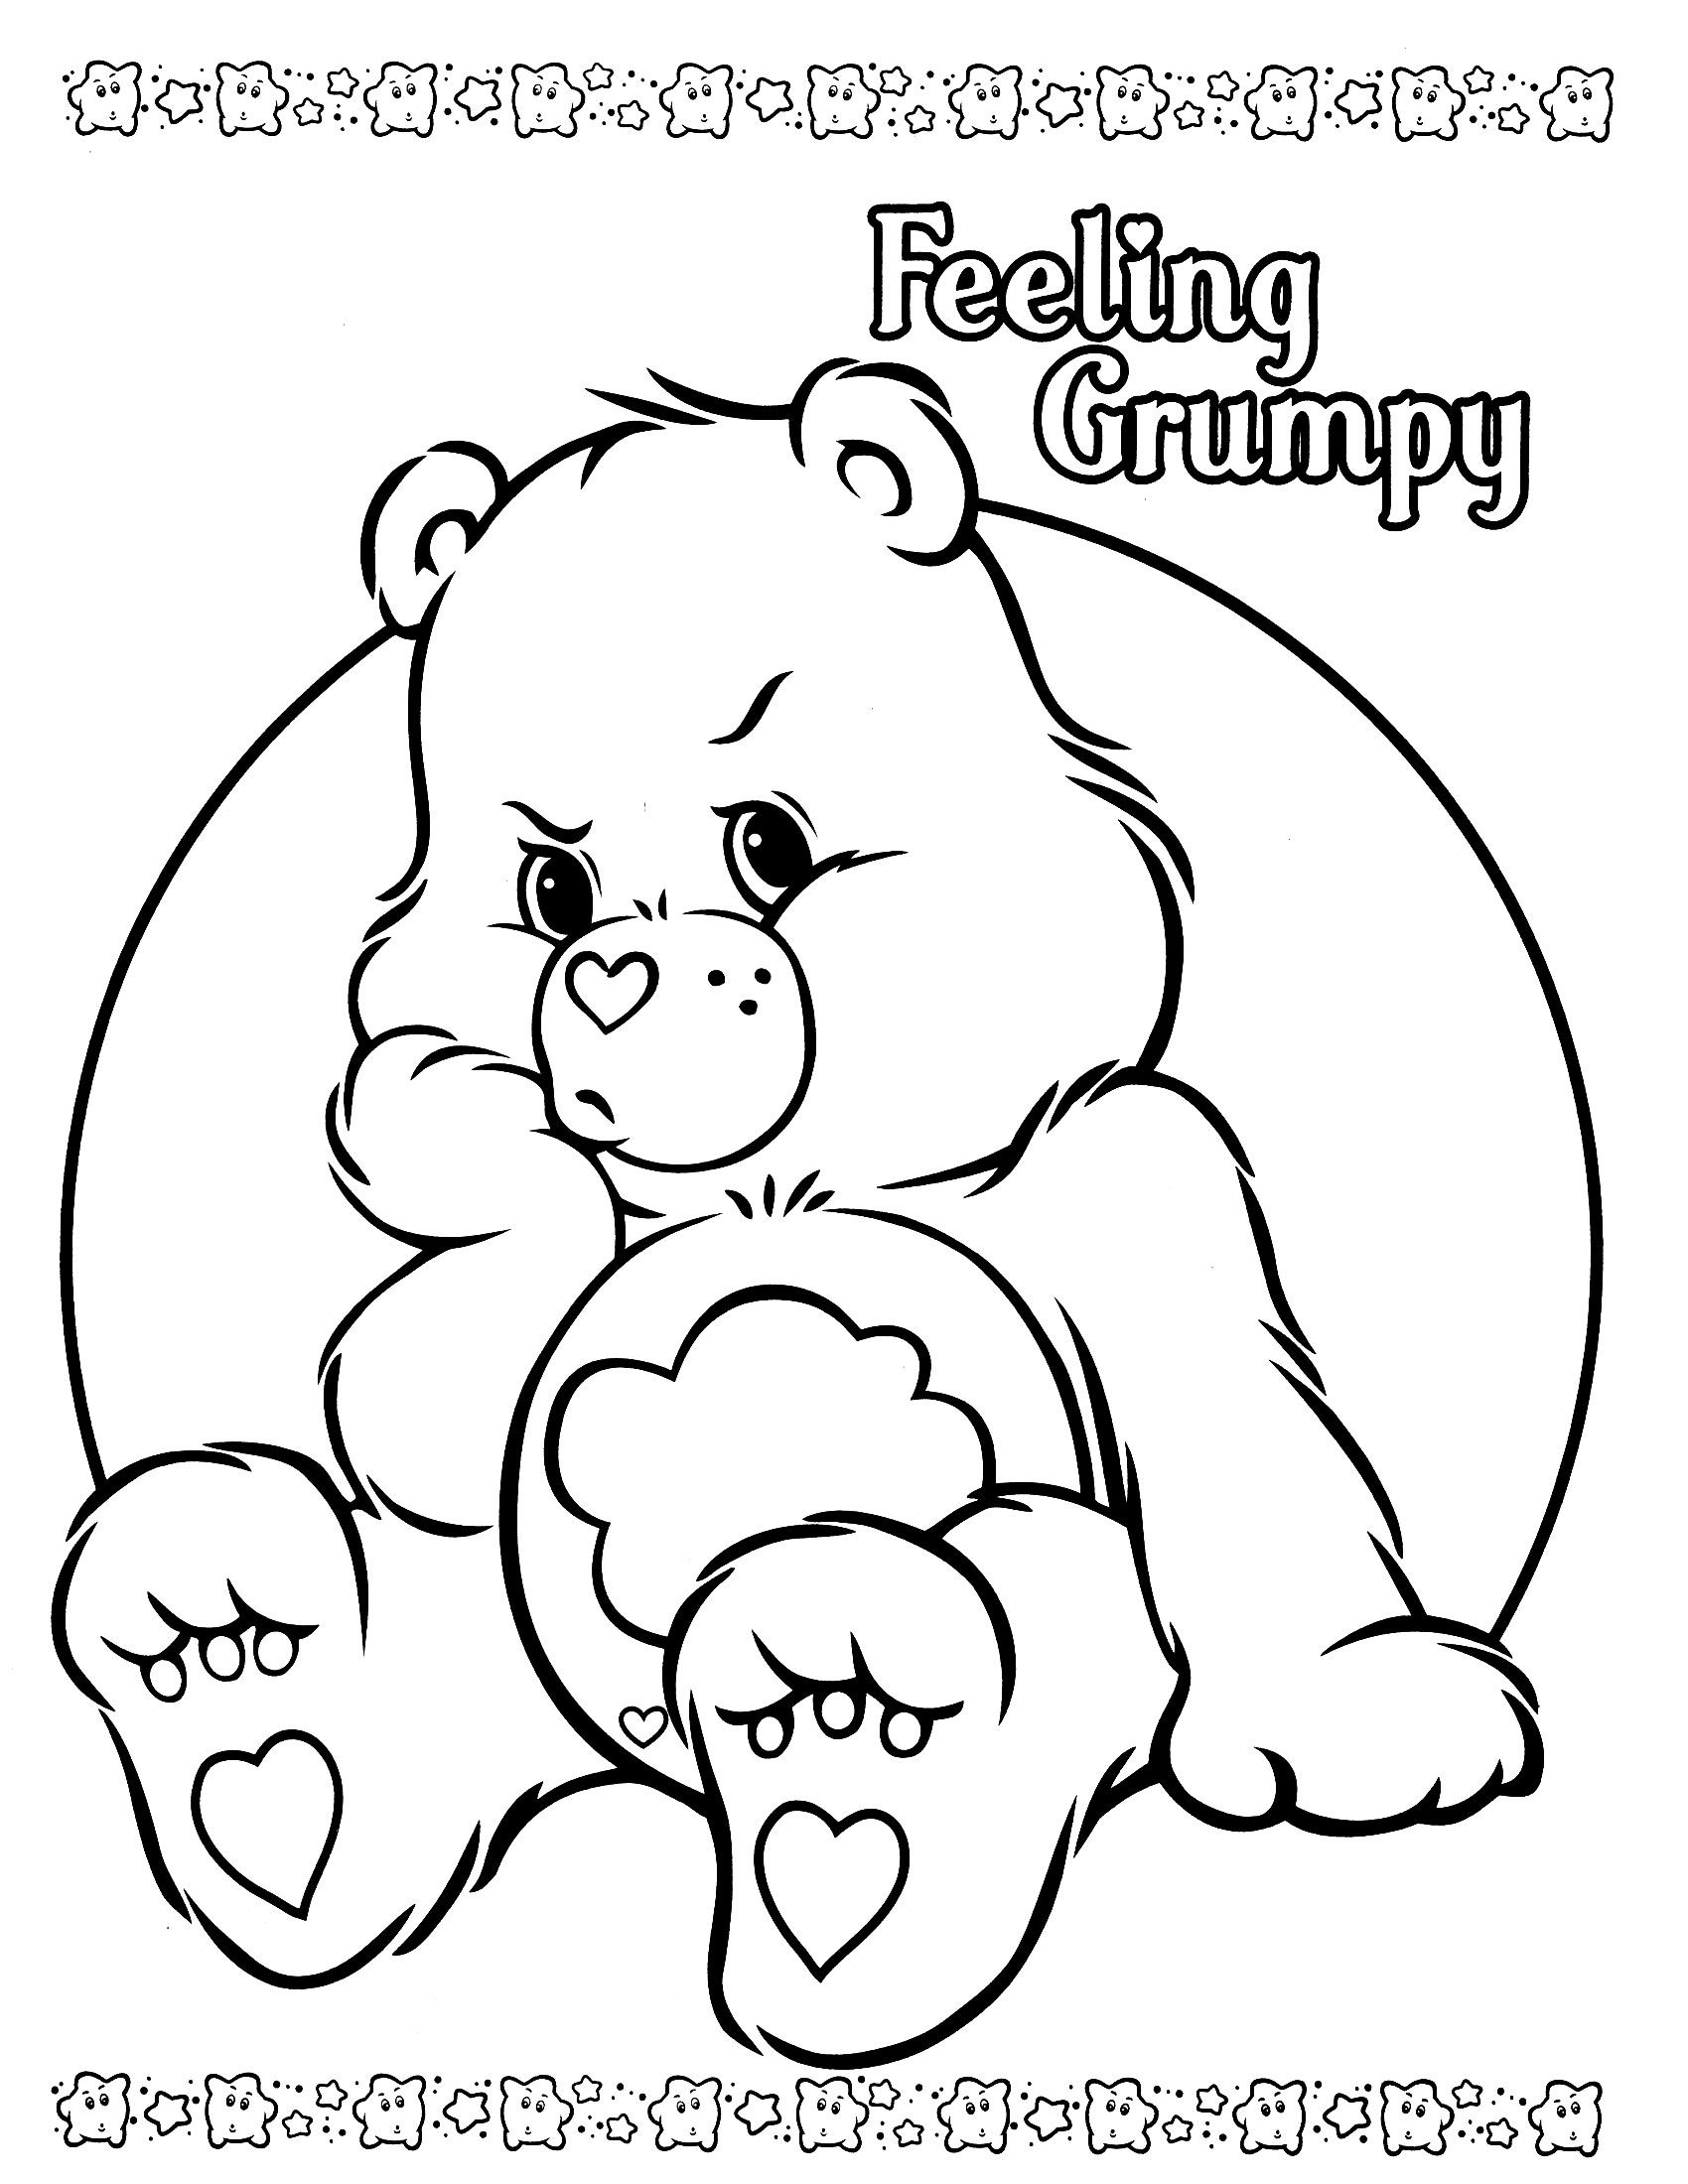 care bears coloring page u2026 care bears pinterest care bears